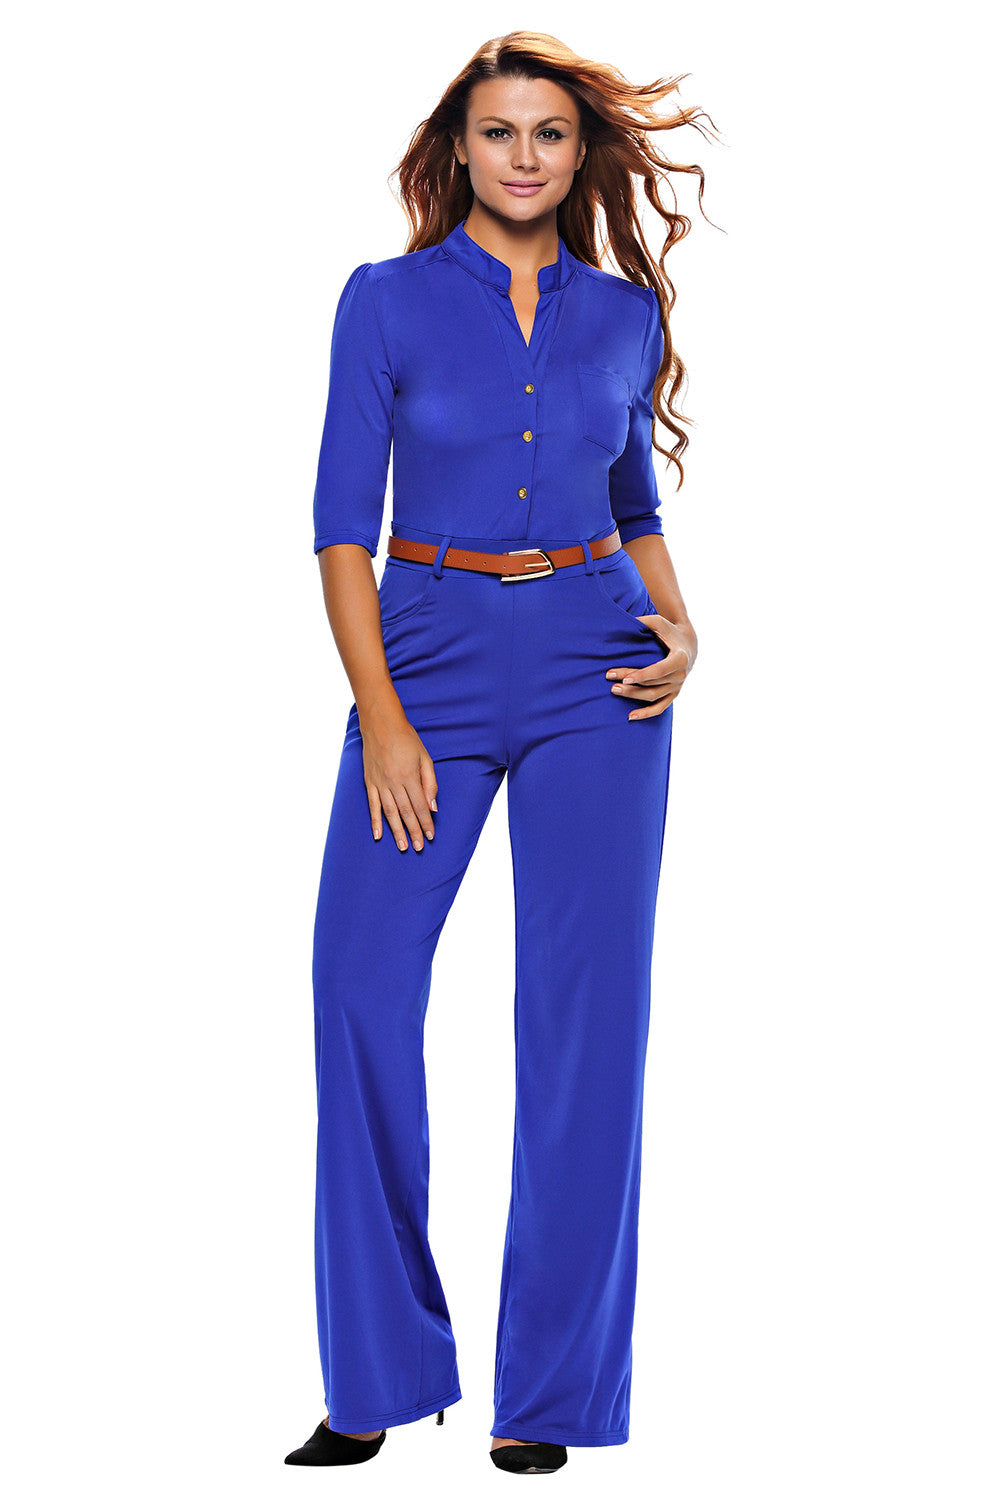 Half Sleeve Diva Fashion Wide Leg Jumpsuit 64205 - IBL Fashion - 4